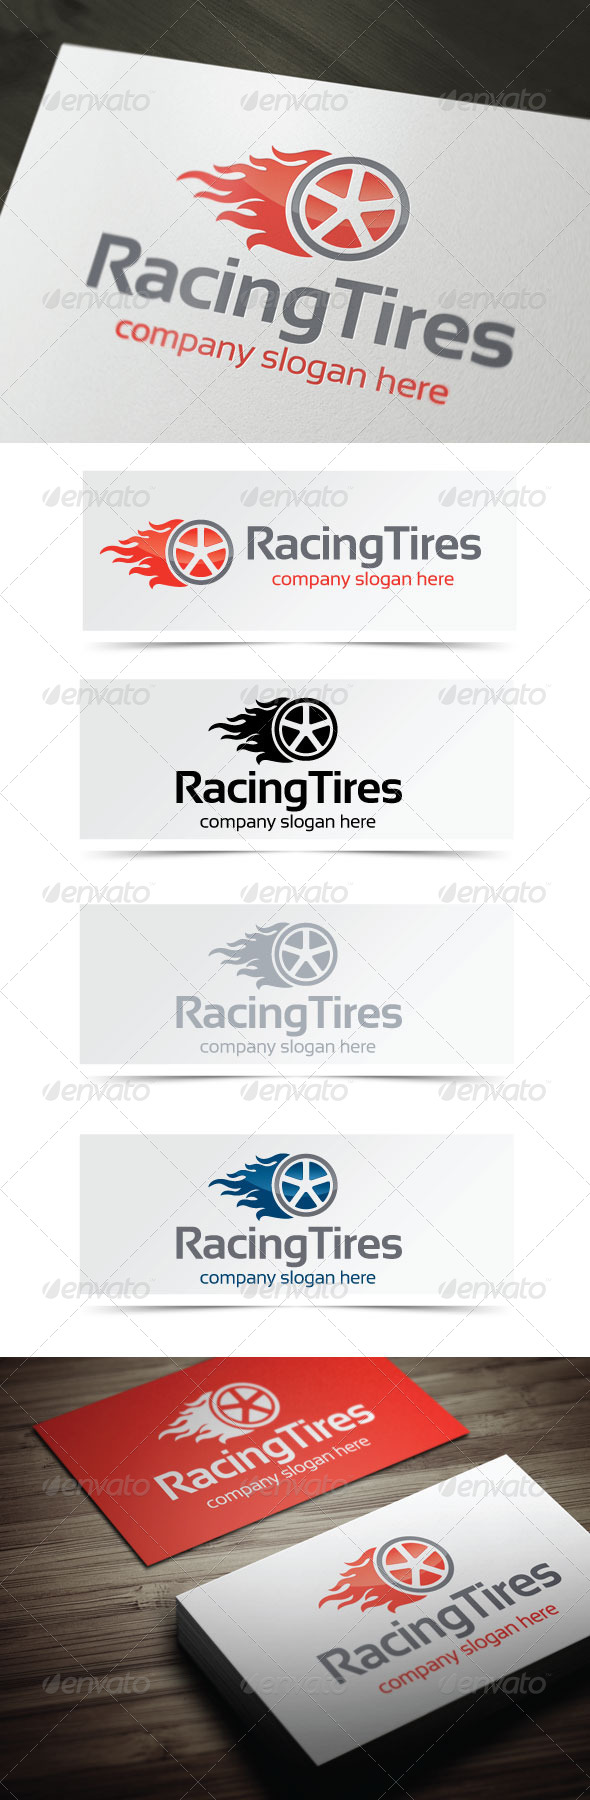 Racing Tires - Objects Logo Templates